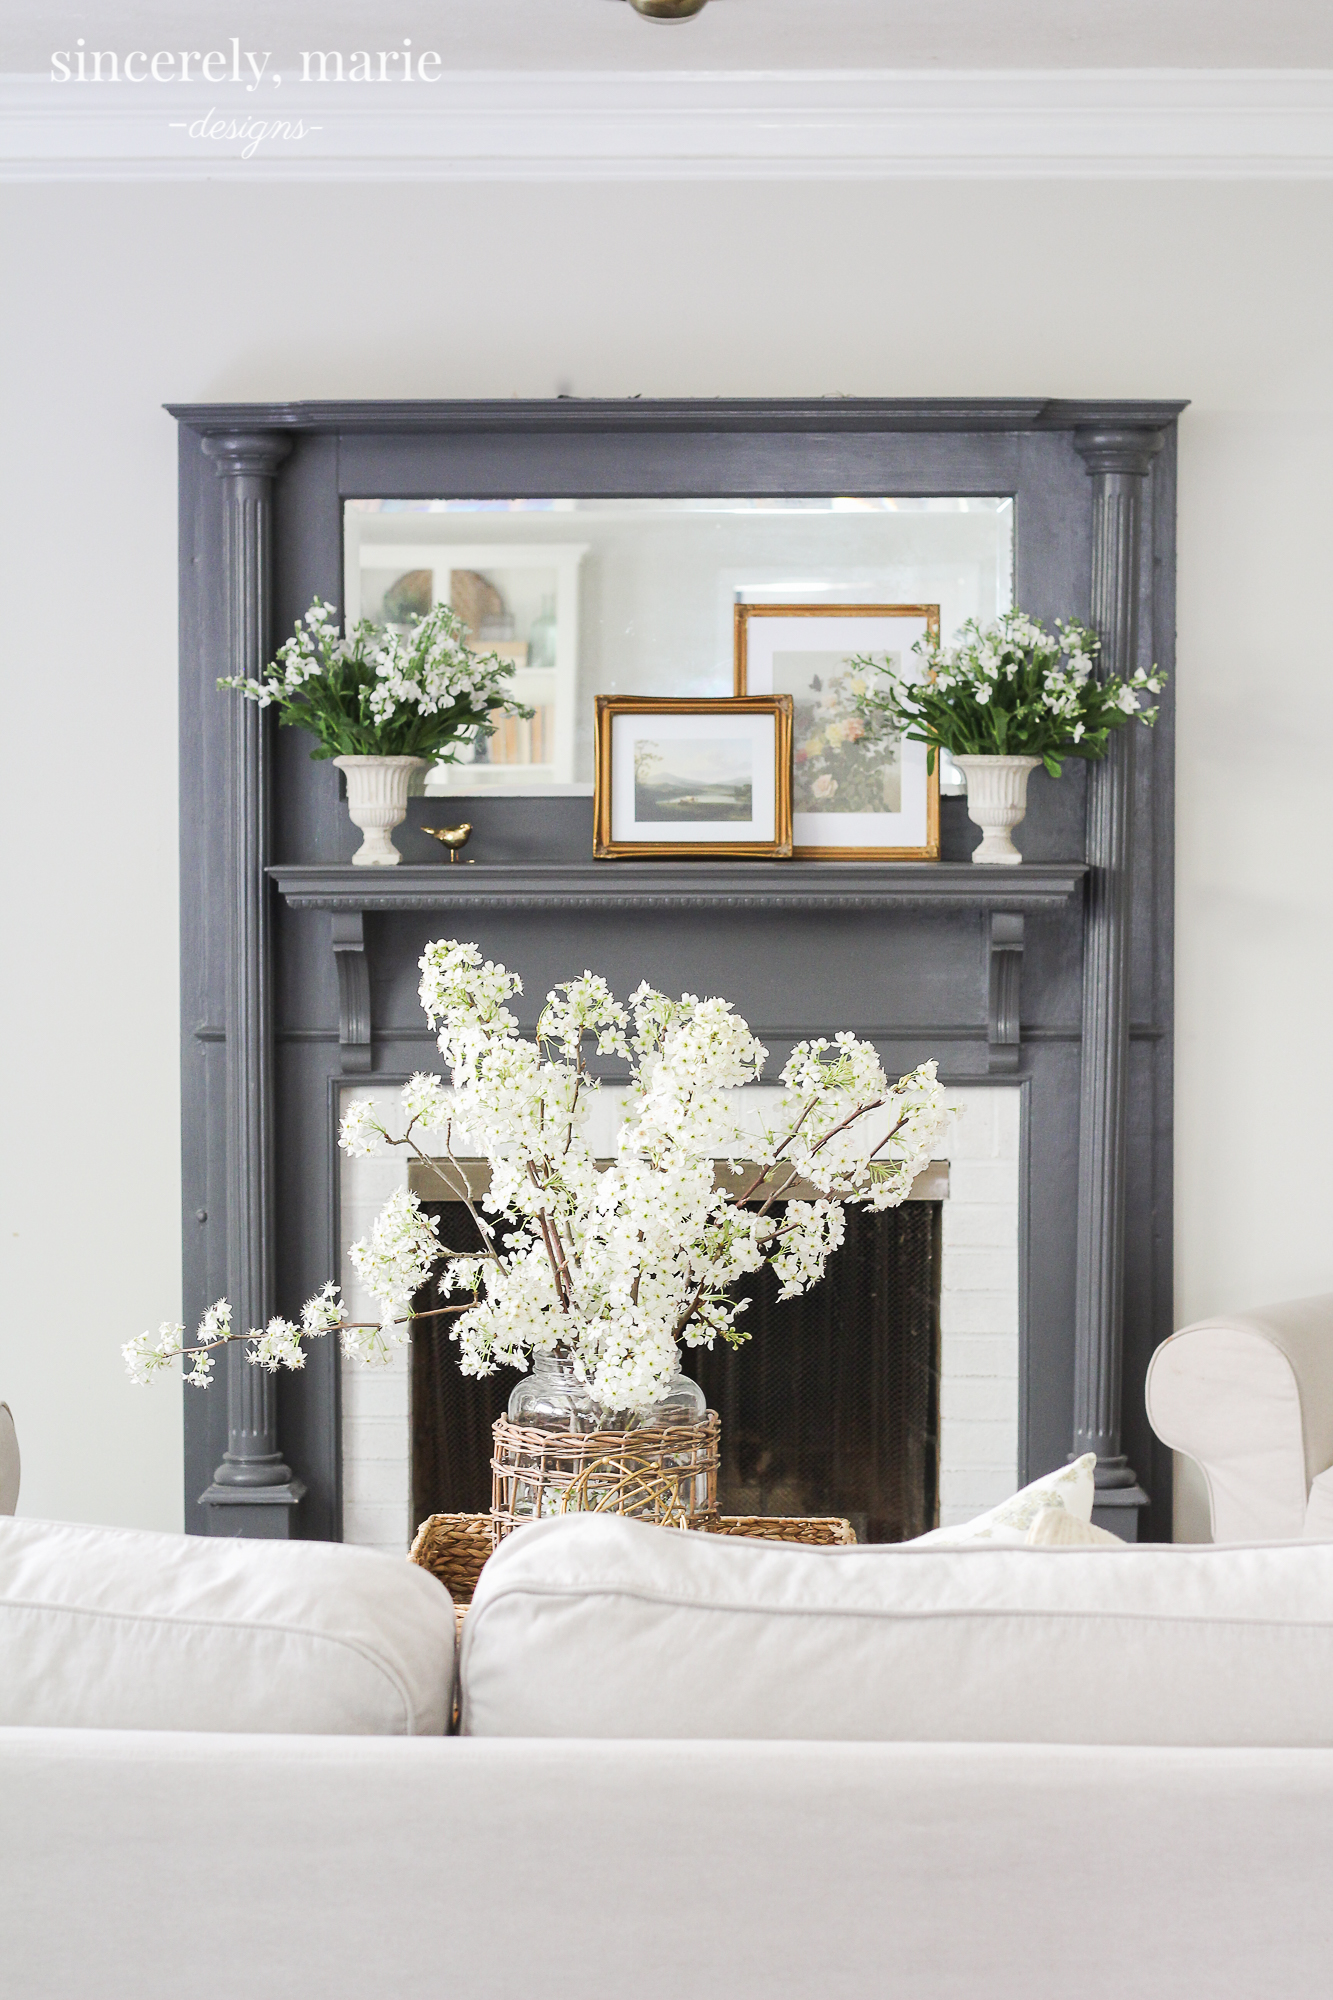 Simple & Classic Spring Mantel - Sincerely, Marie Designs